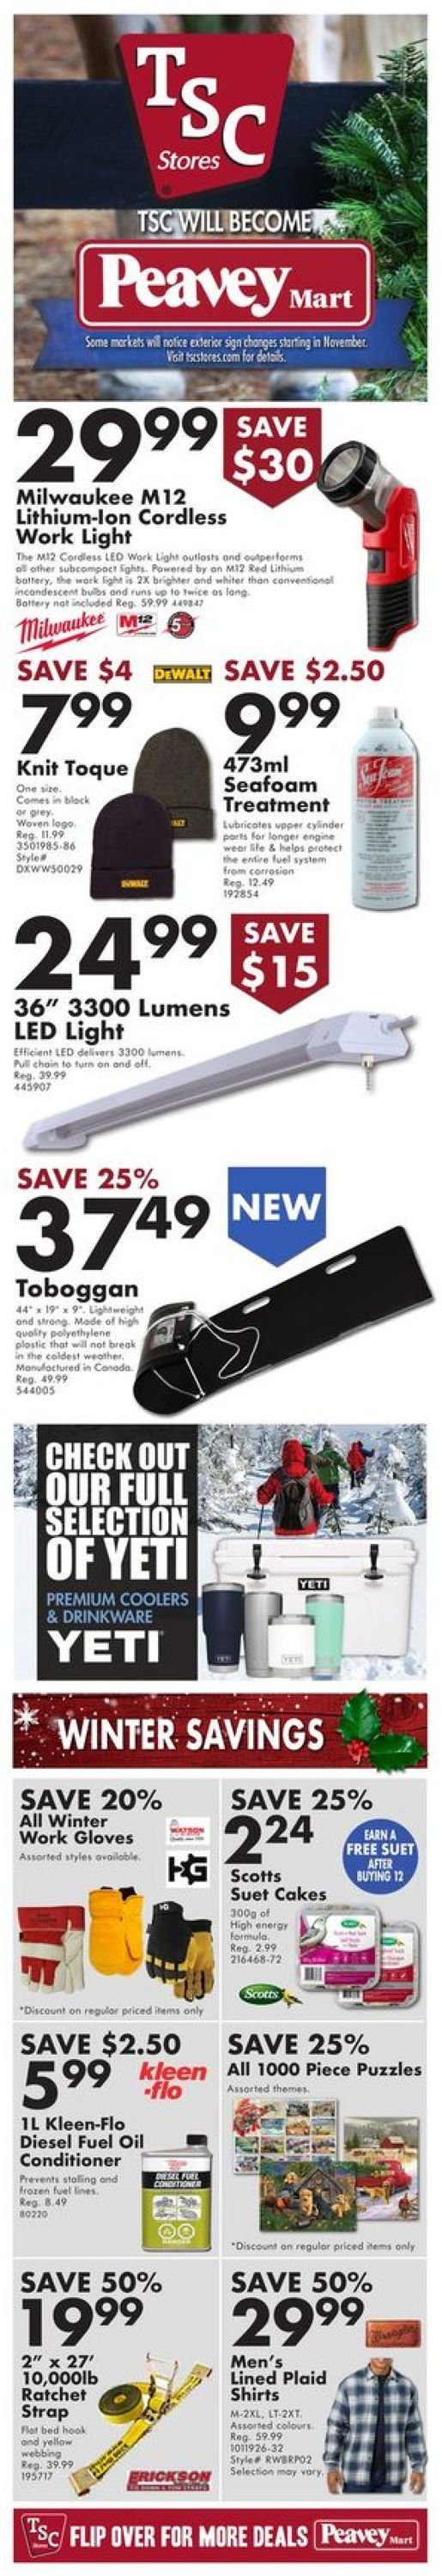 TSC Stores - Holiday 2020 Flyer - 12/04-12/09/2020